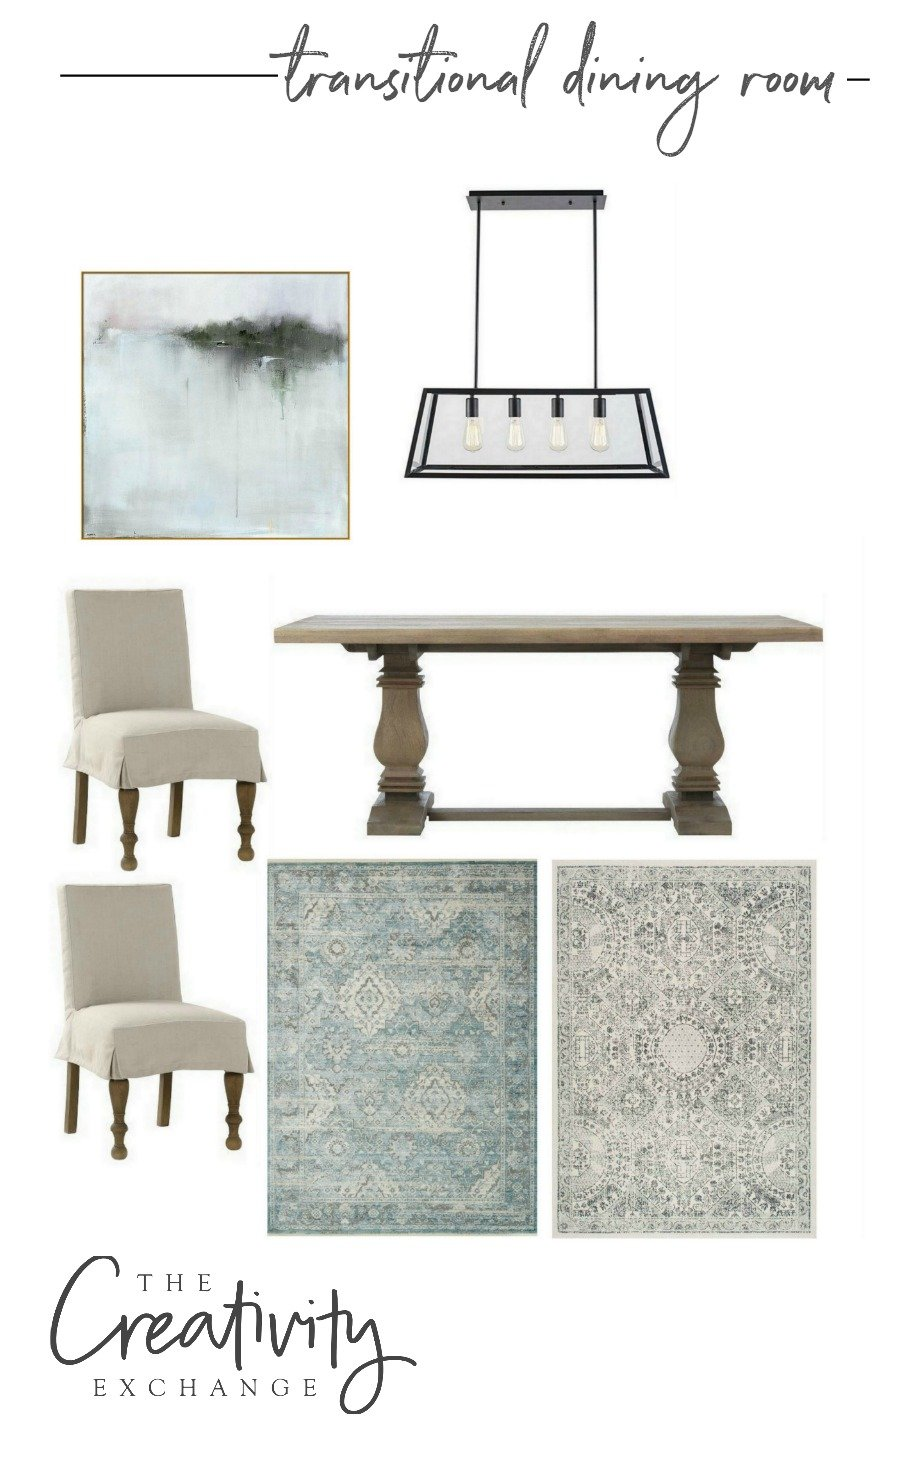 Transitional dining room design mood board